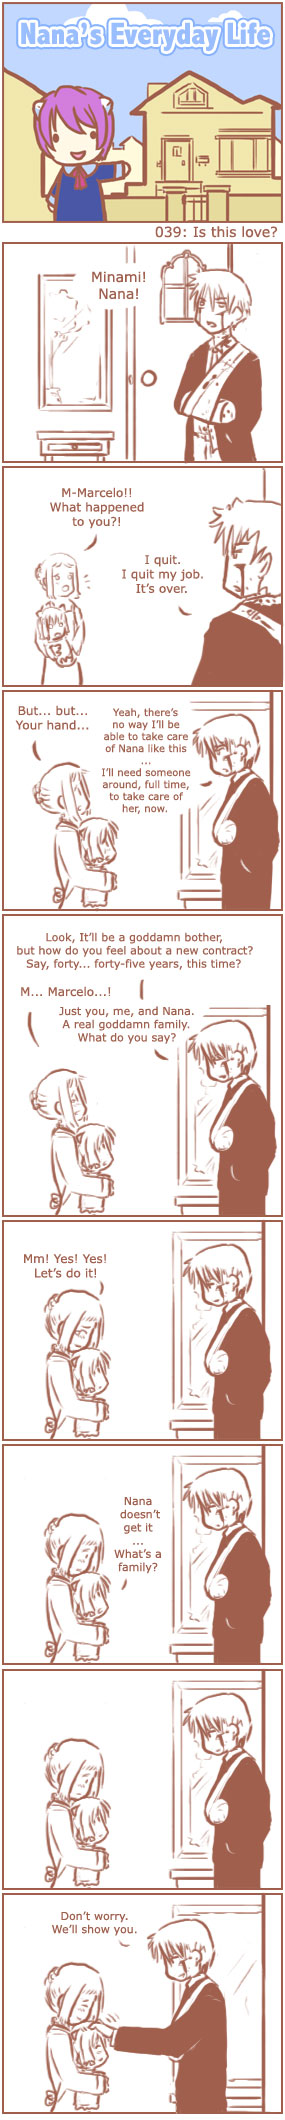 [Nana's Everyday Life - strip 39]